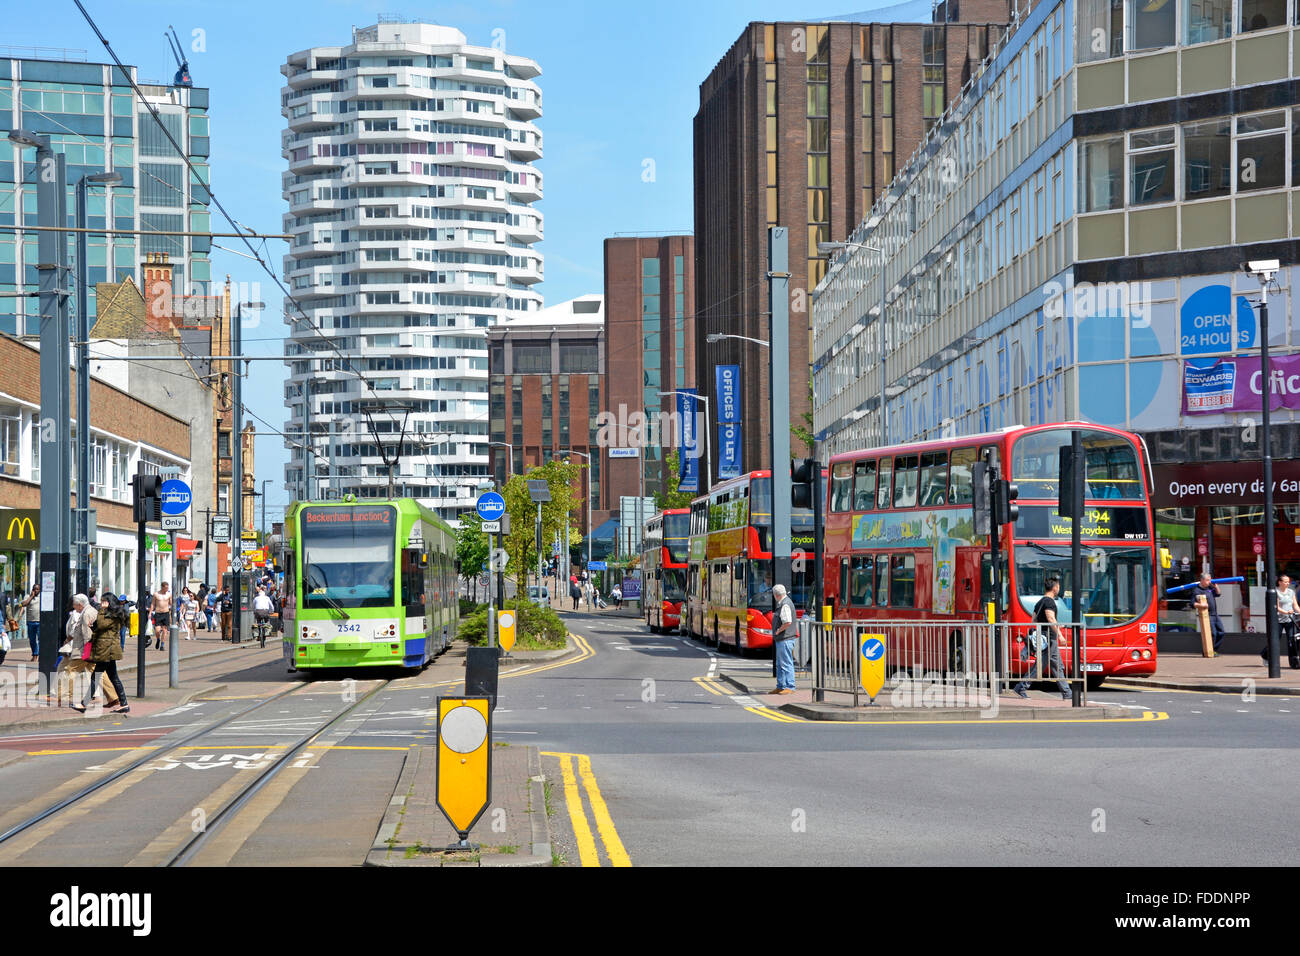 Croydon town centre with London double decker bus & tram public transport services & the No.1 Croydon NLA - Stock Image